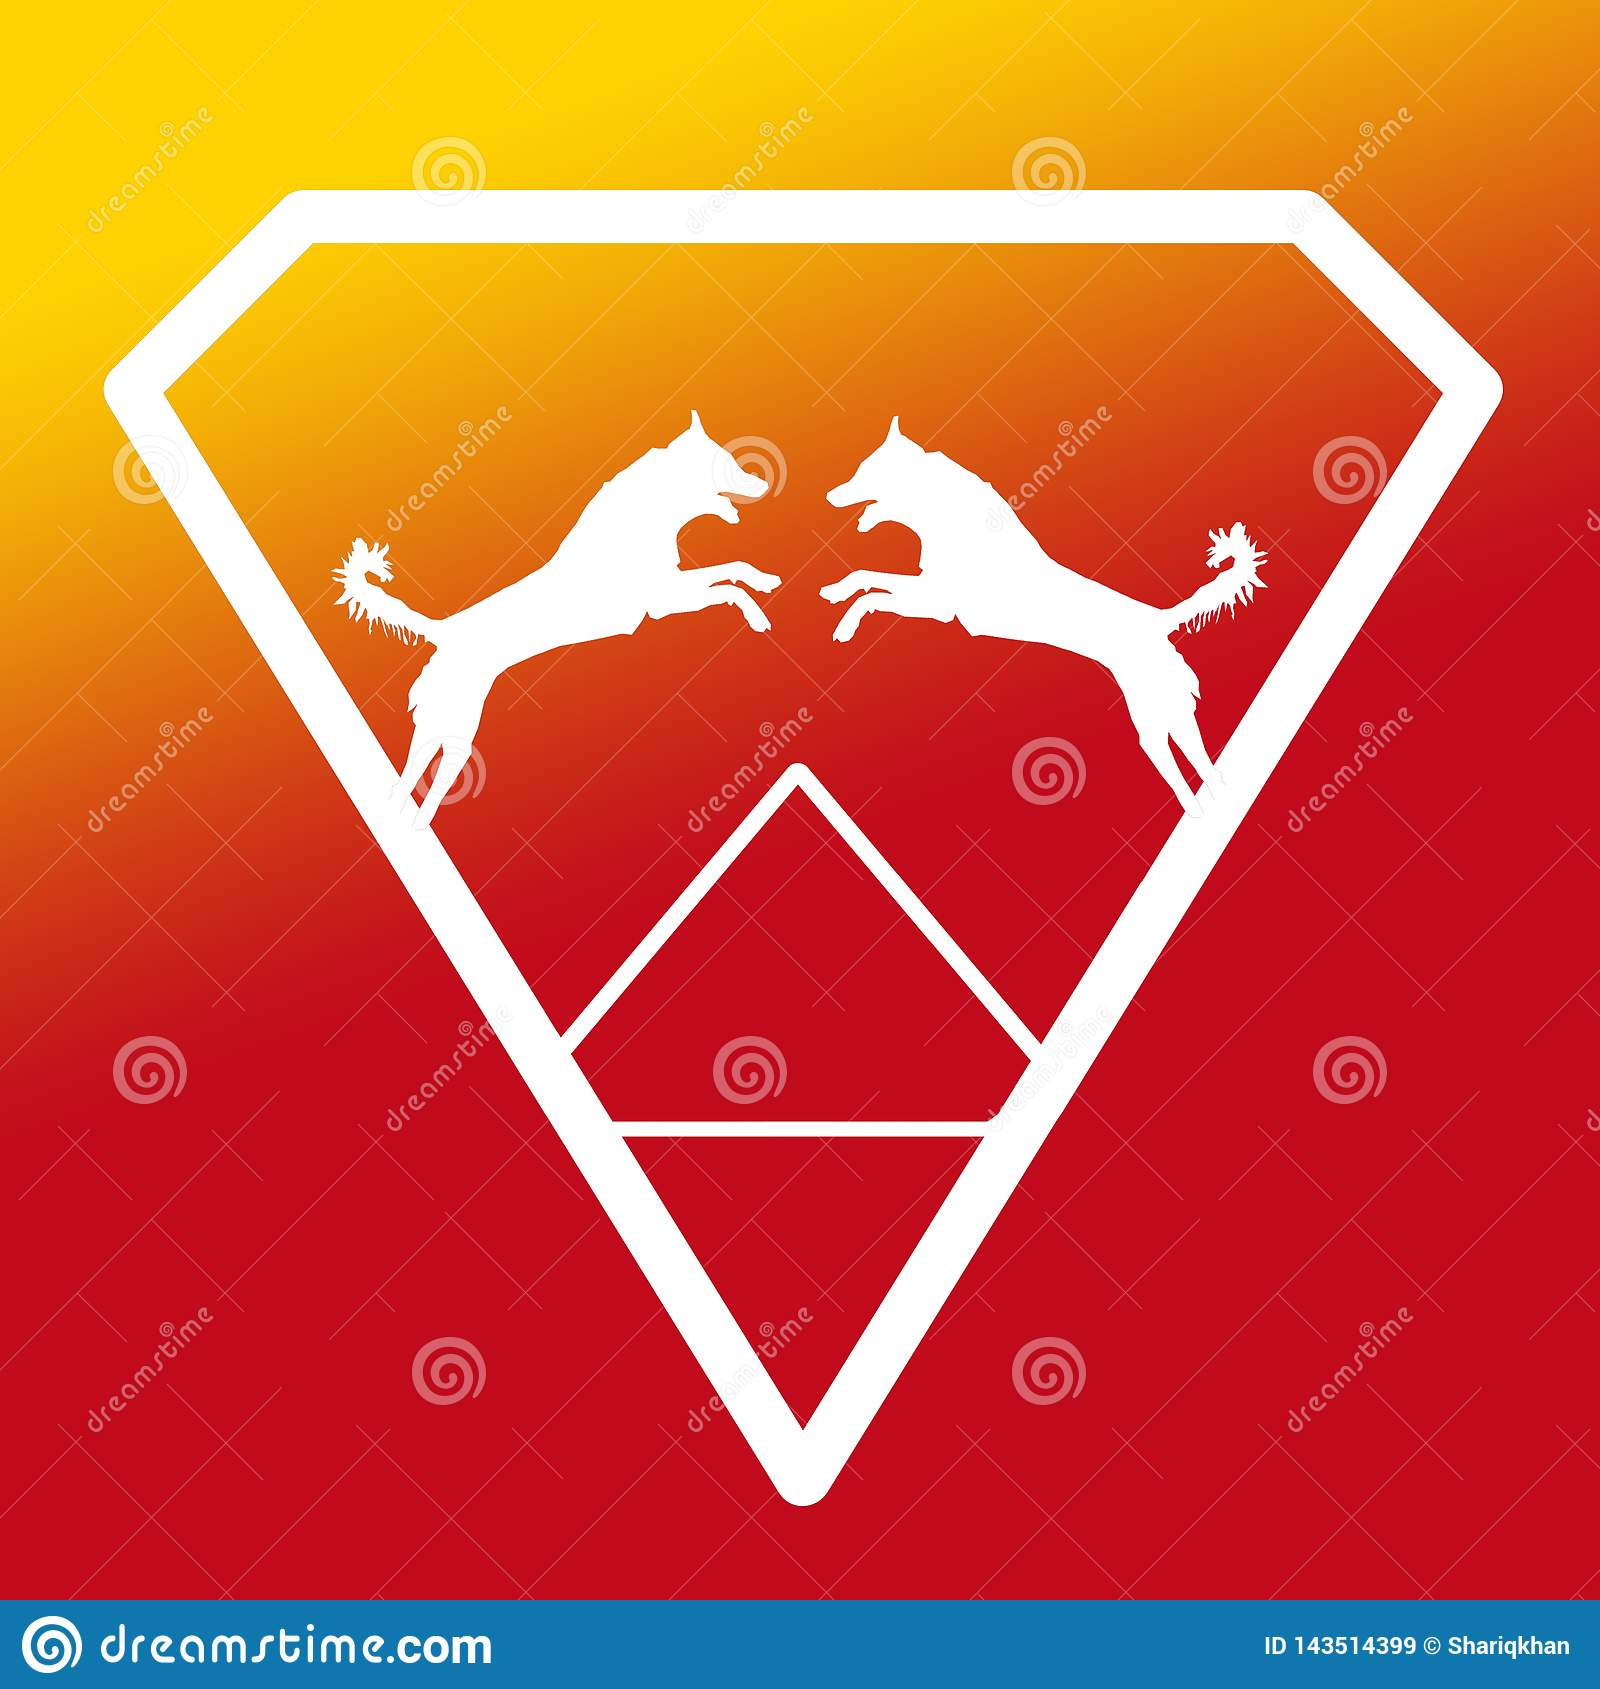 Logo Banner Image Jumping Dog-Paar in Diamond Shape op Geeloranje Achtergrond